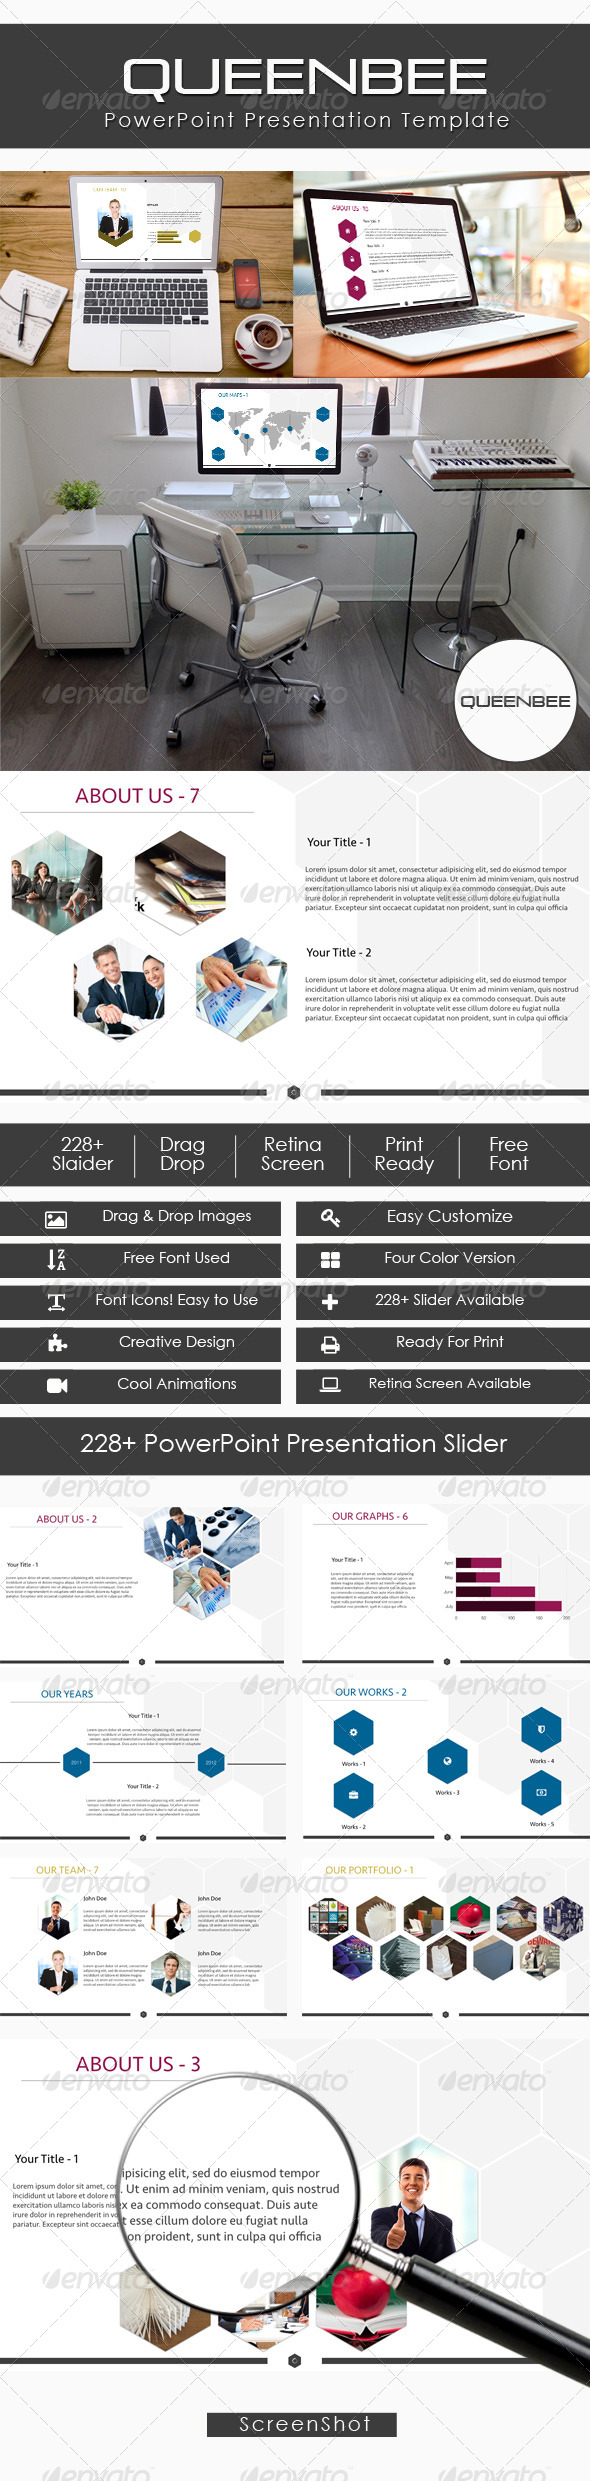 GraphicRiver QueenBee Creative PowerPoint Templates 7591908